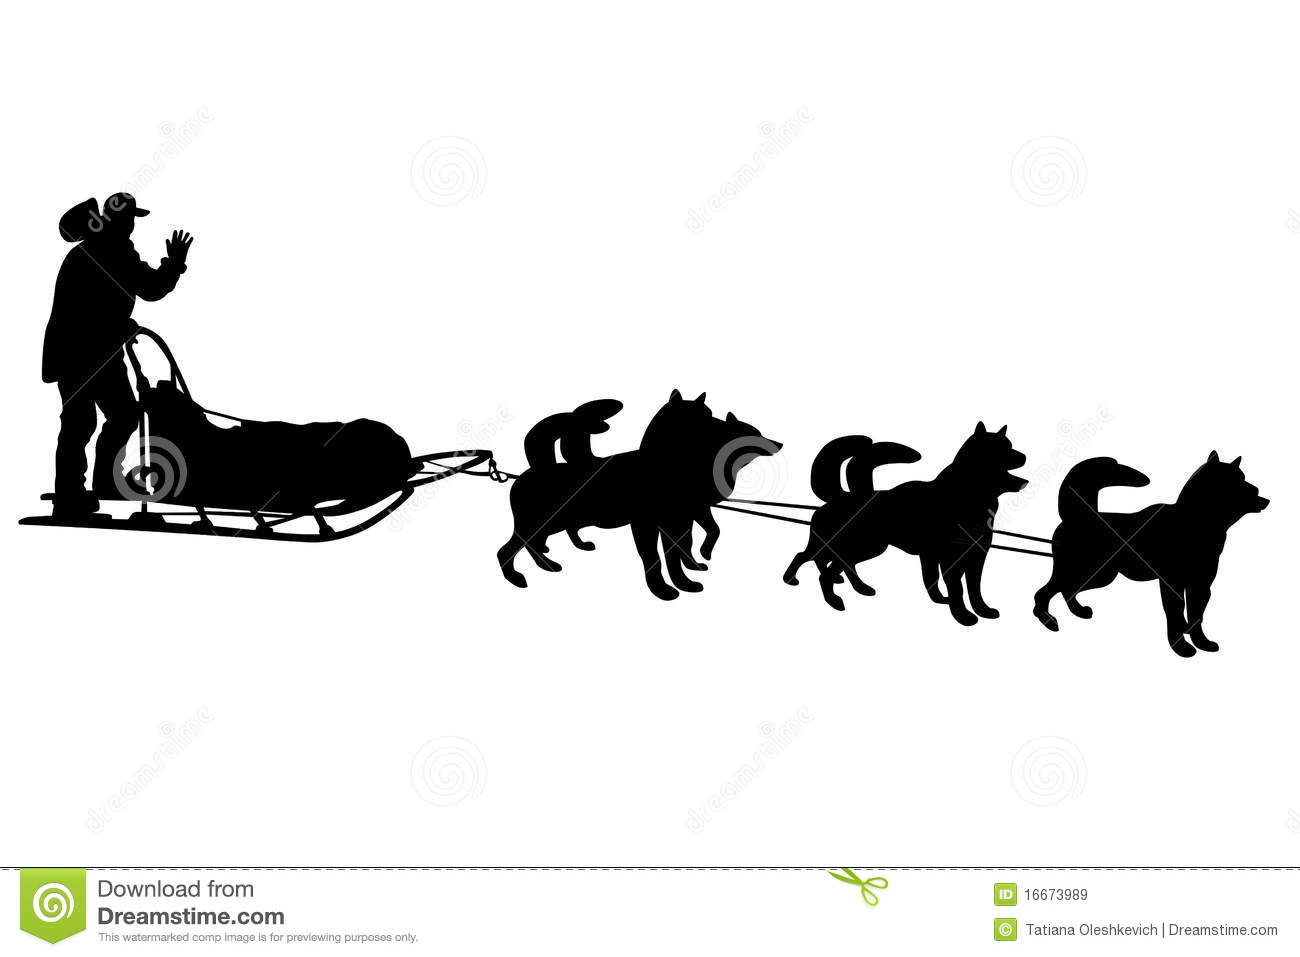 dog sled silhouettes stock illustration illustration of Printable Pictures of Santa Claus black and white clipart of santa claus